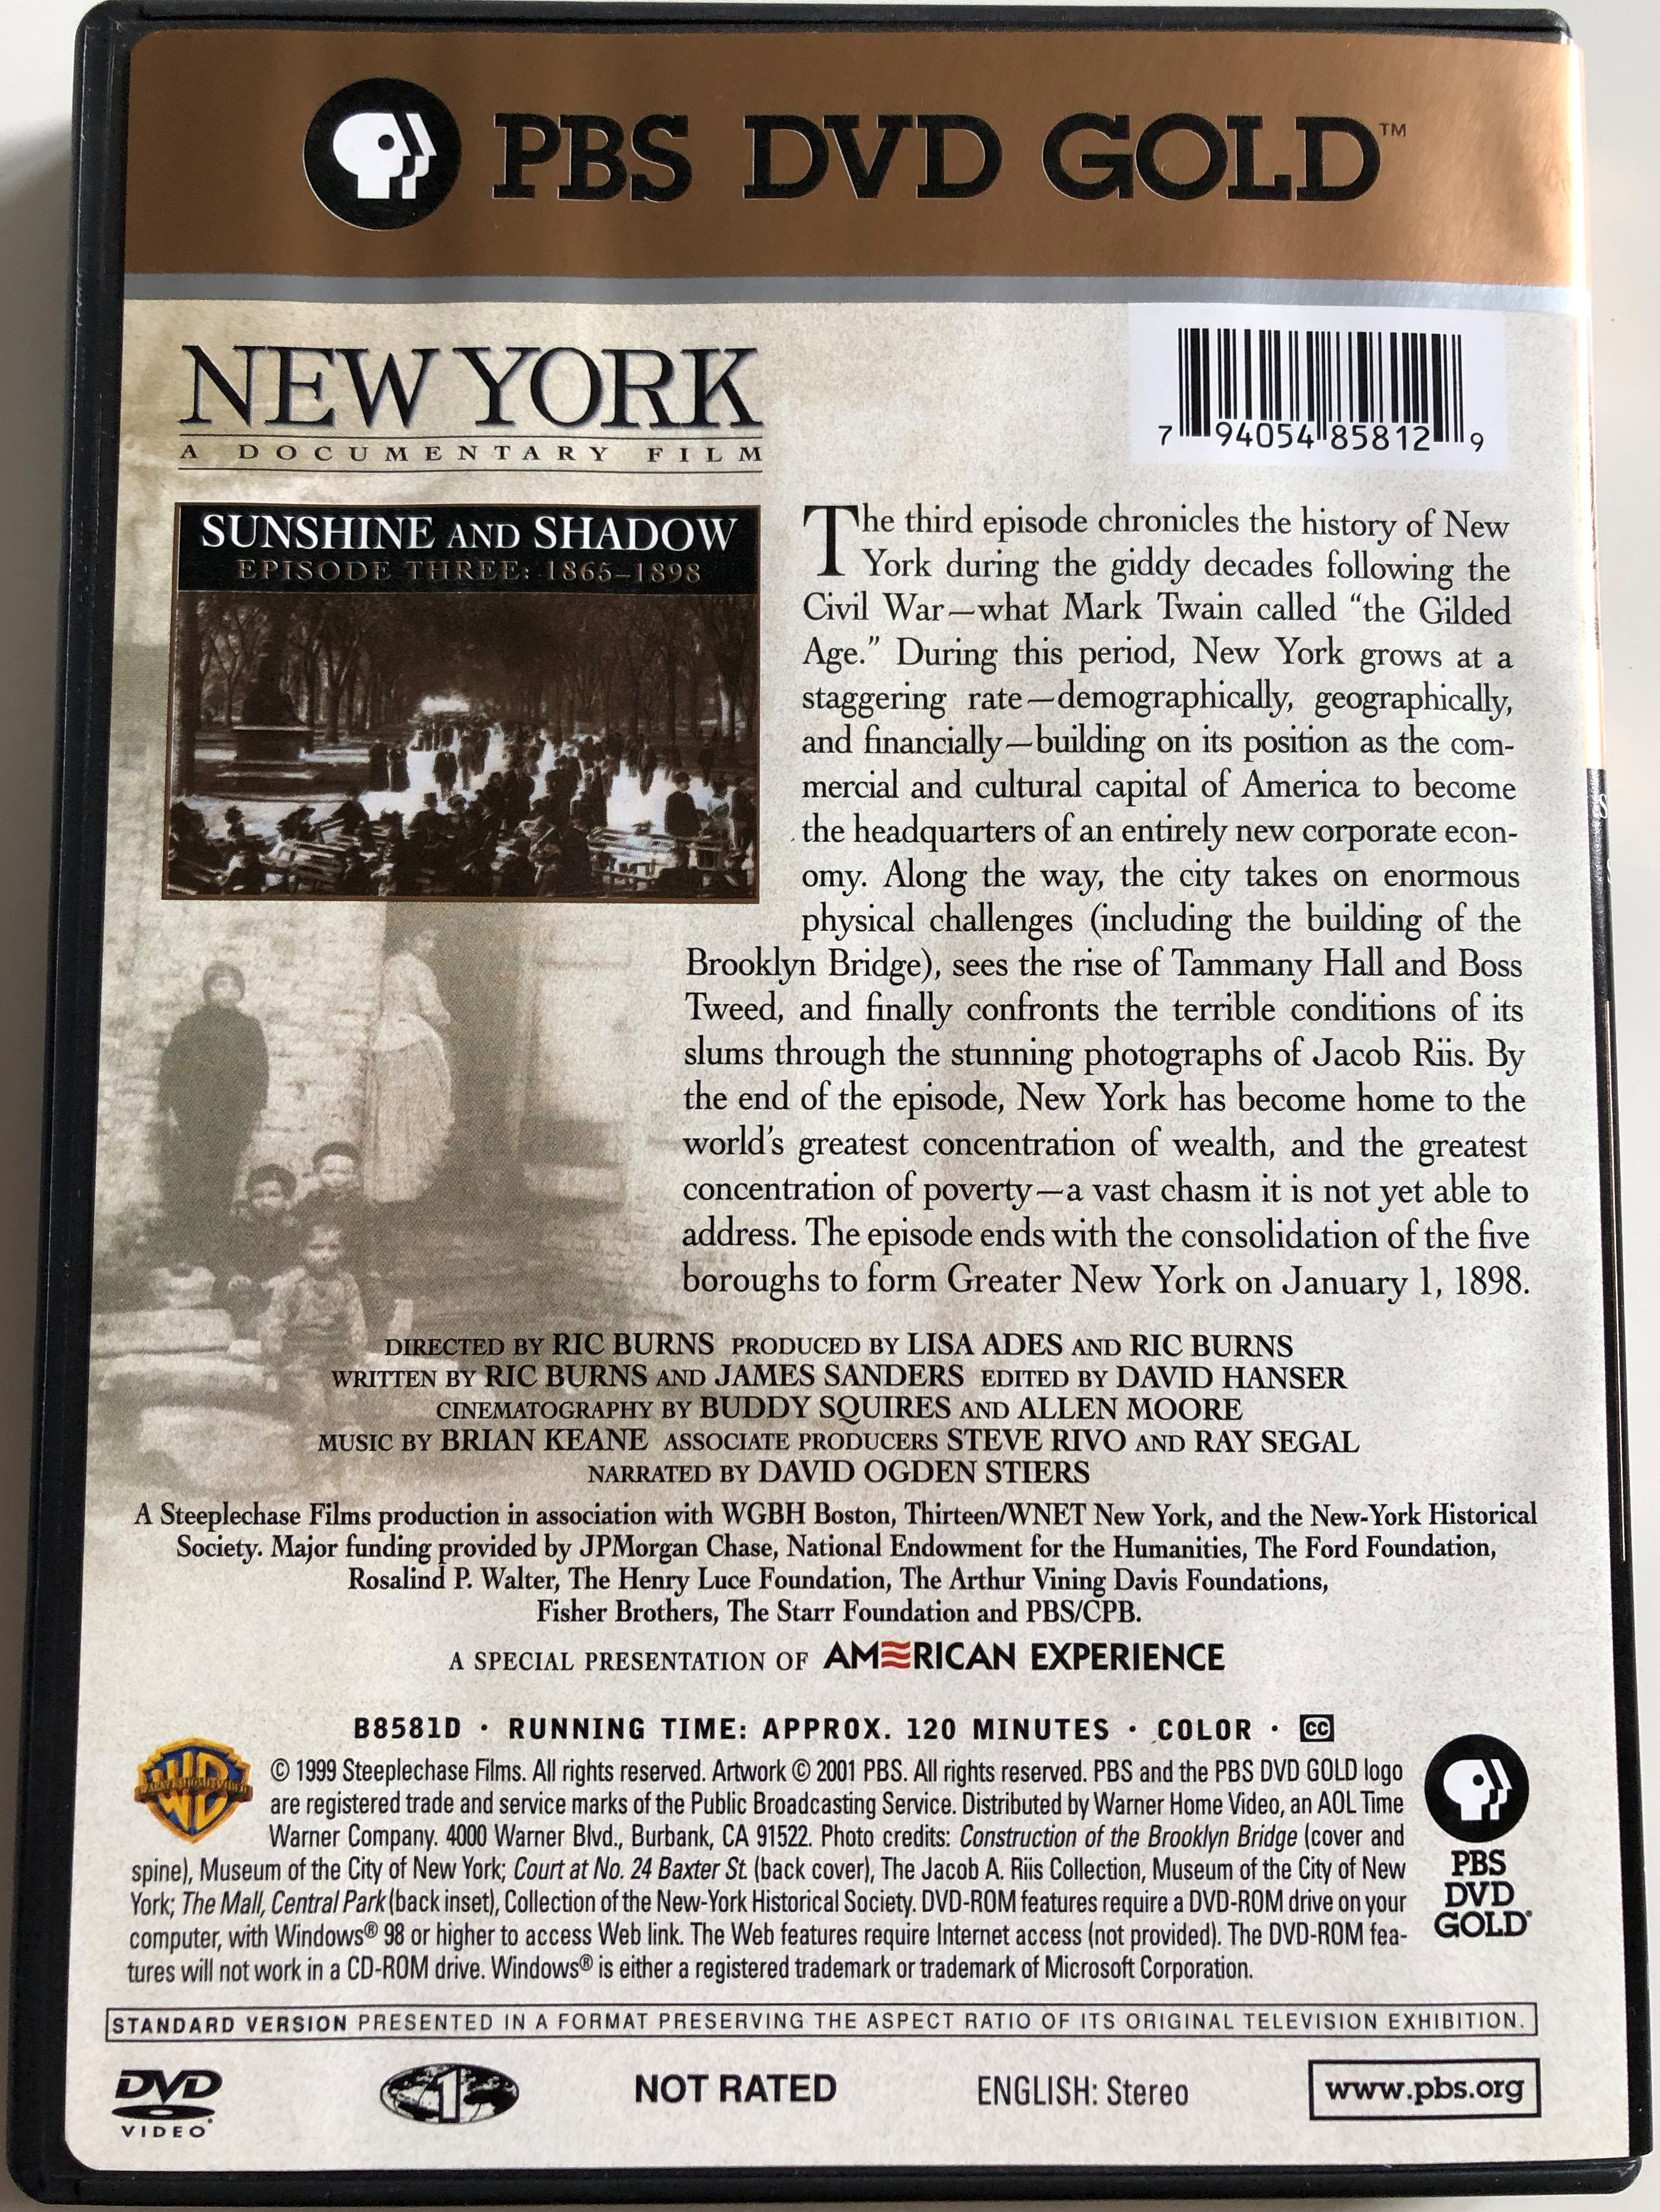 new-york-episode-3-1865-to-1989-sunshine-and-shadow-dvd-1999-3.jpg